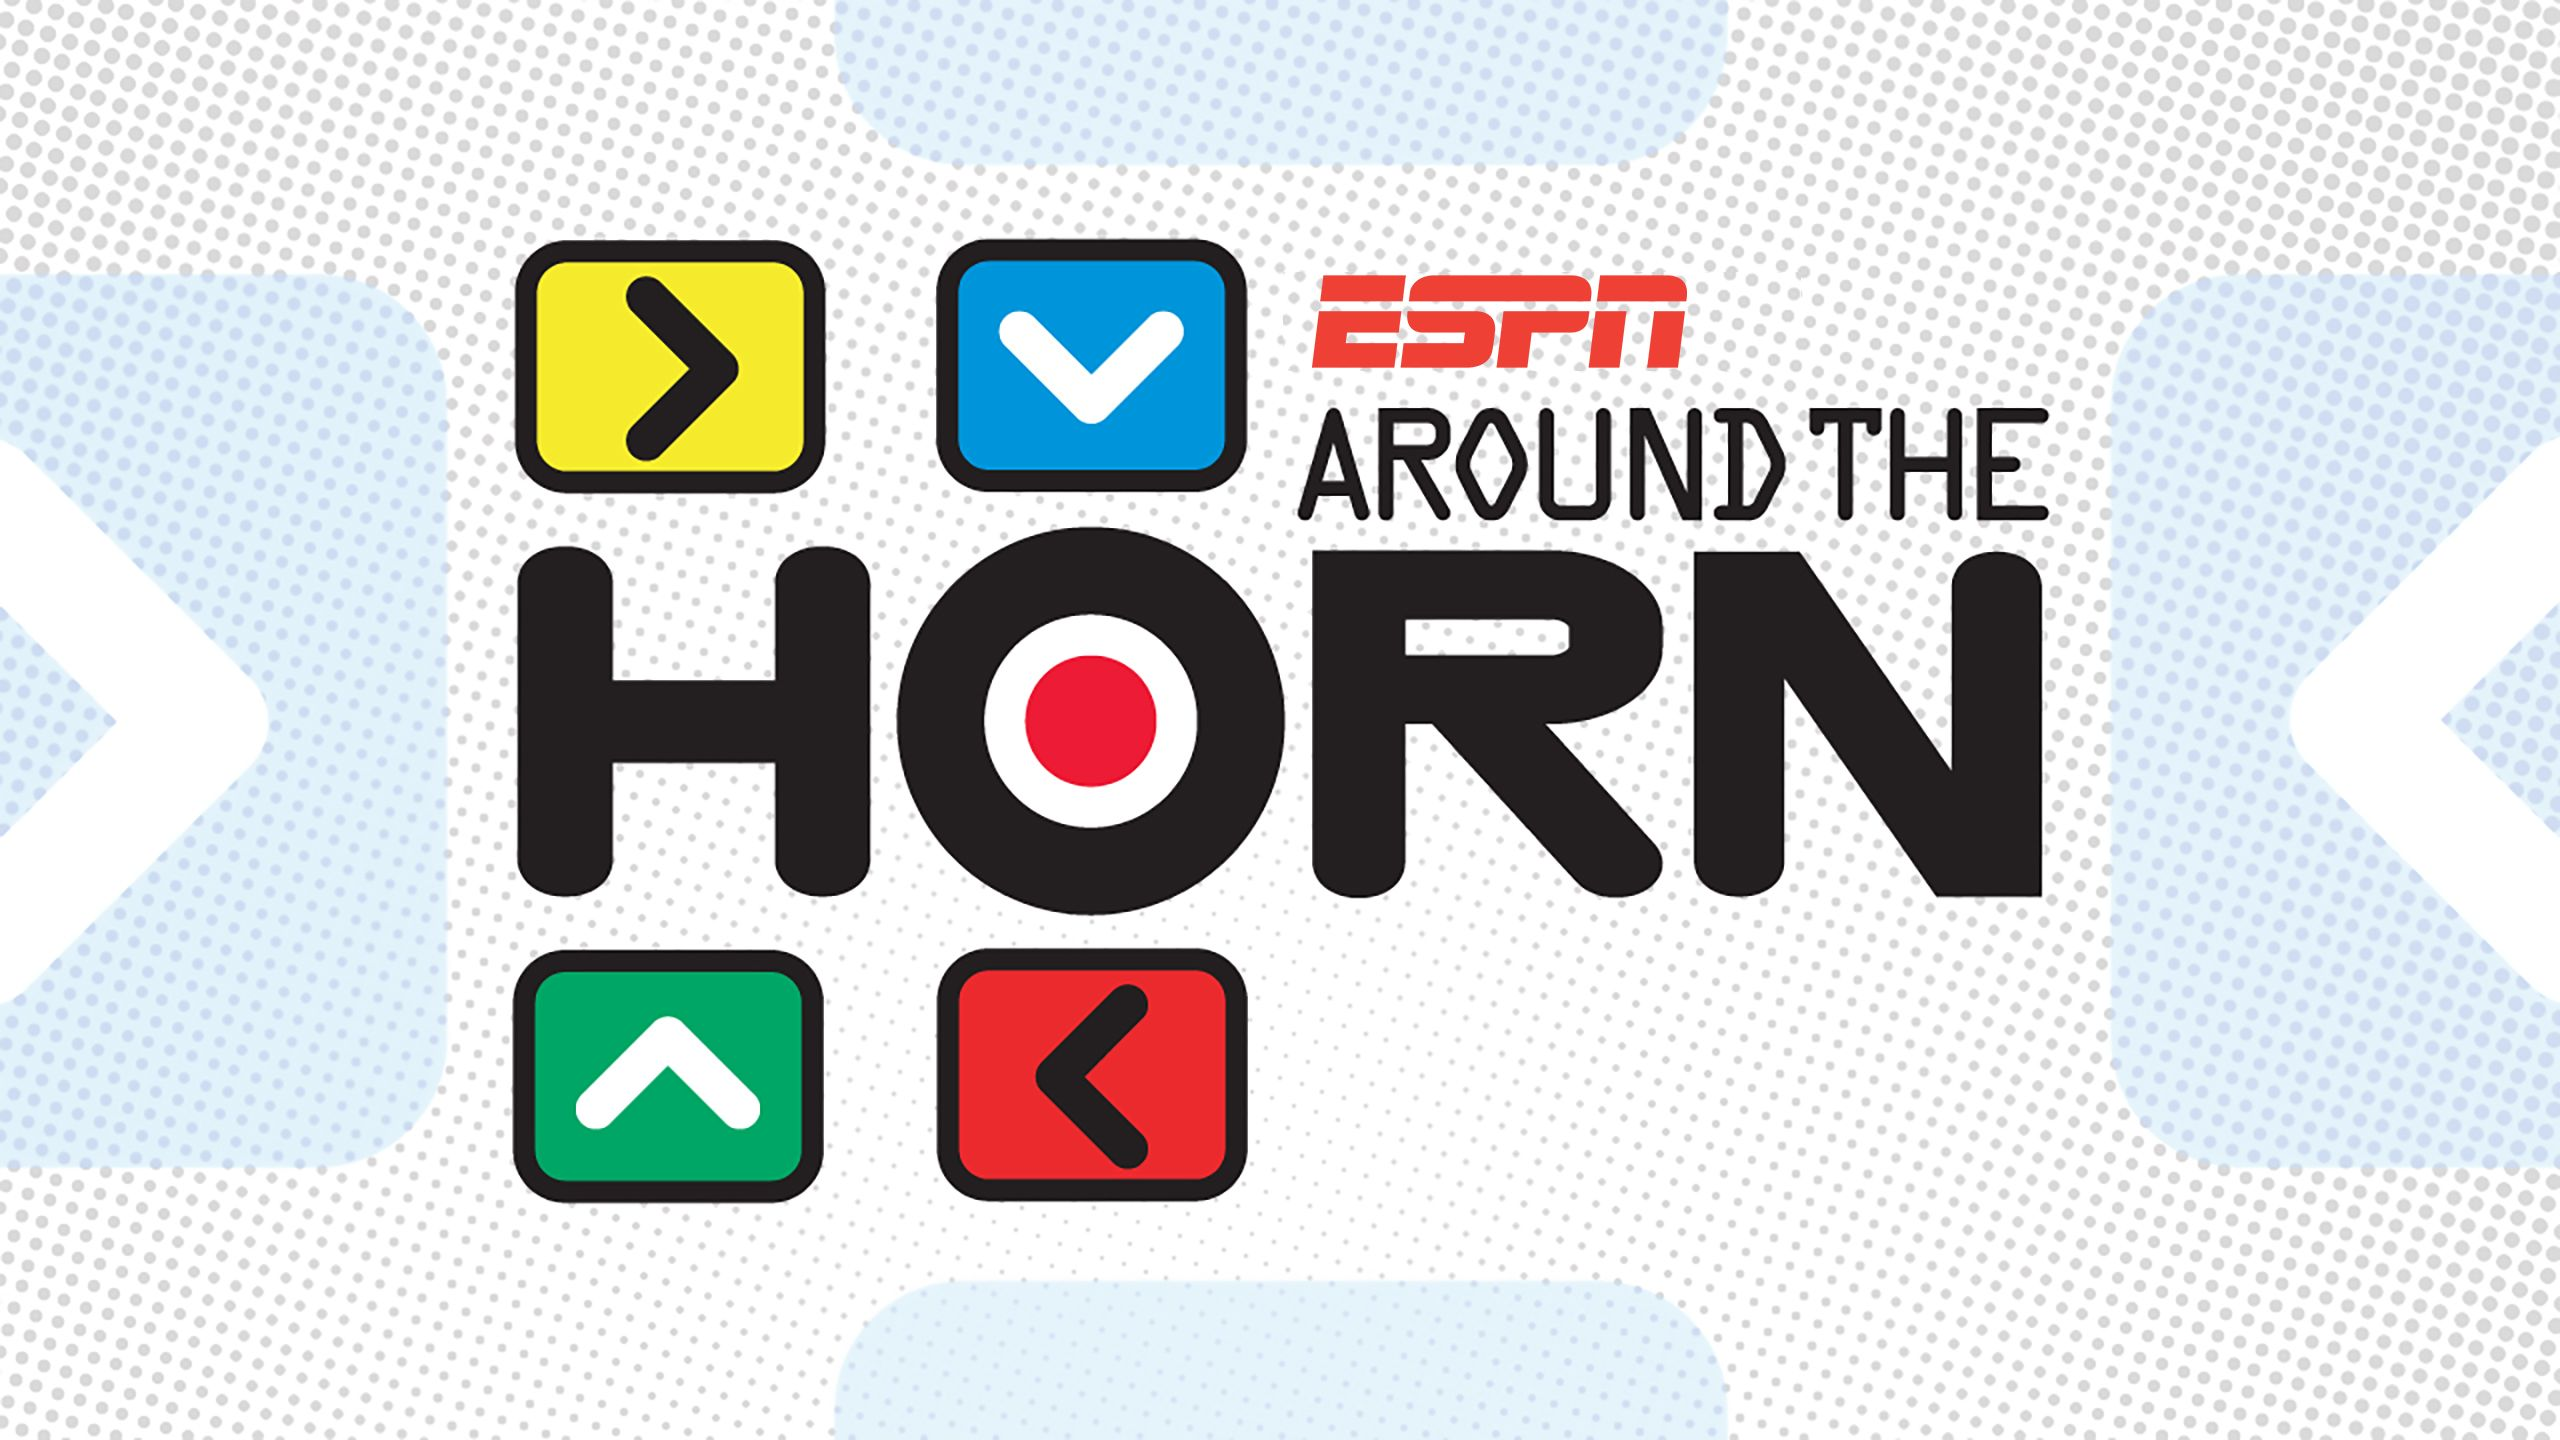 Thu, 1/18 - Around The Horn